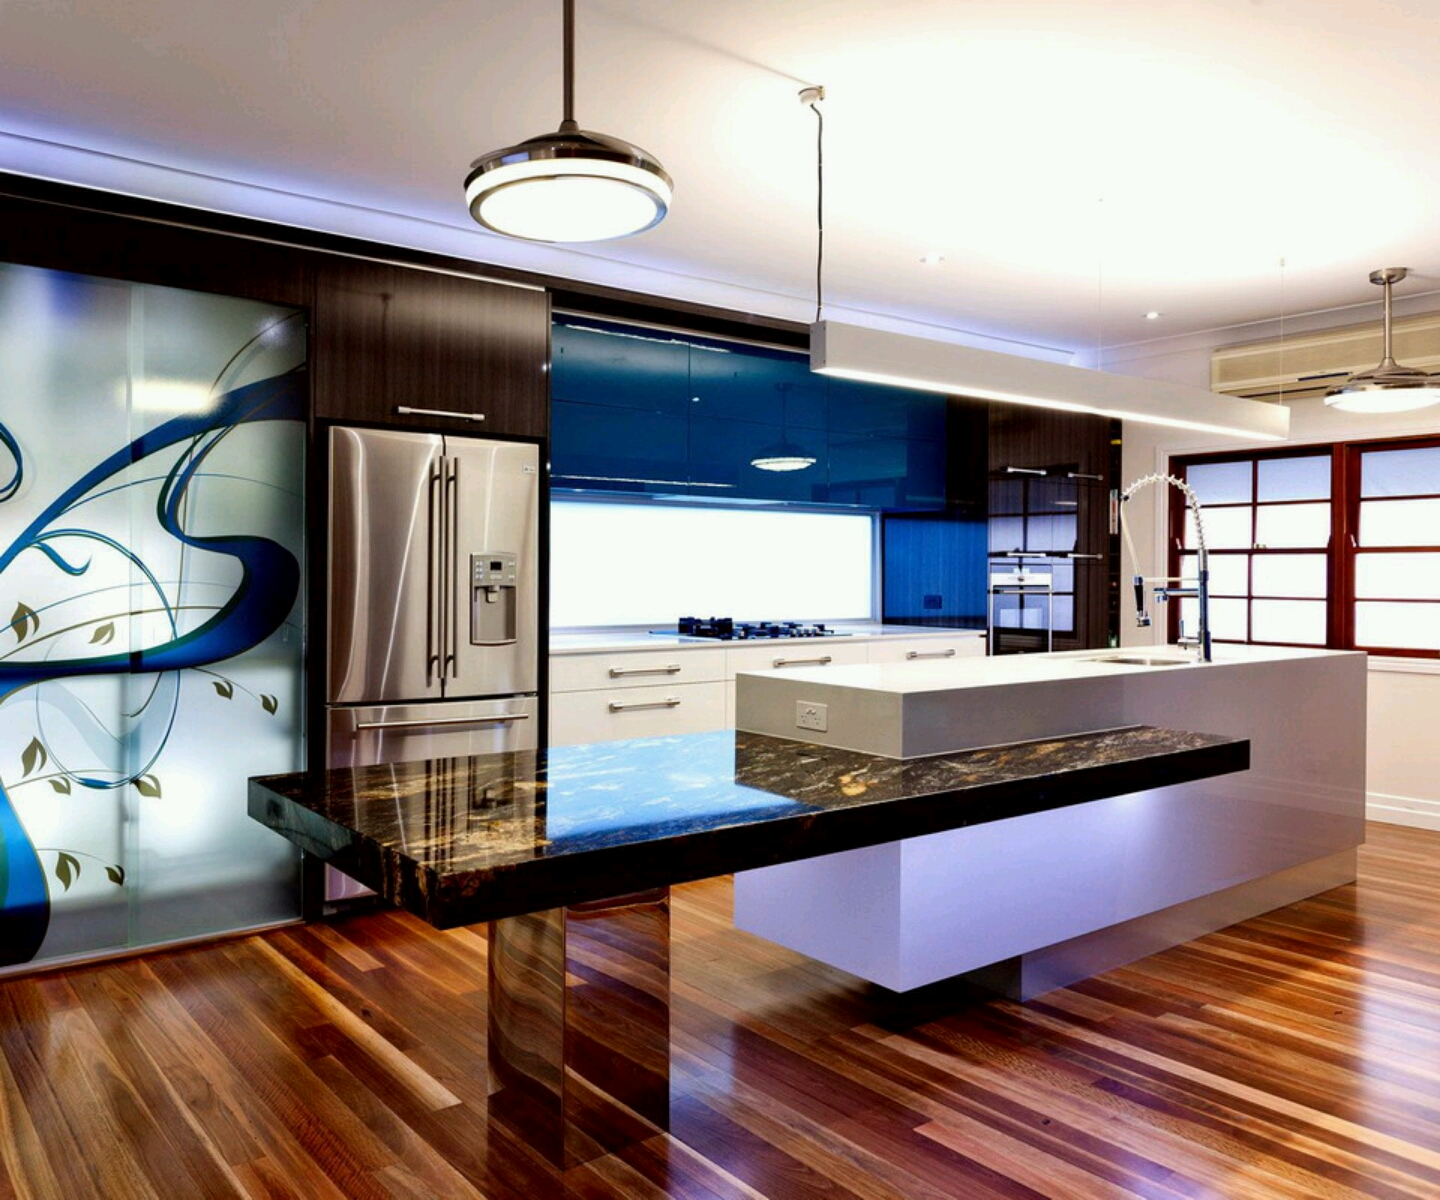 modern kitchen design ideas 2013 modern kitchen designs 2013 interior decorating accessories 441